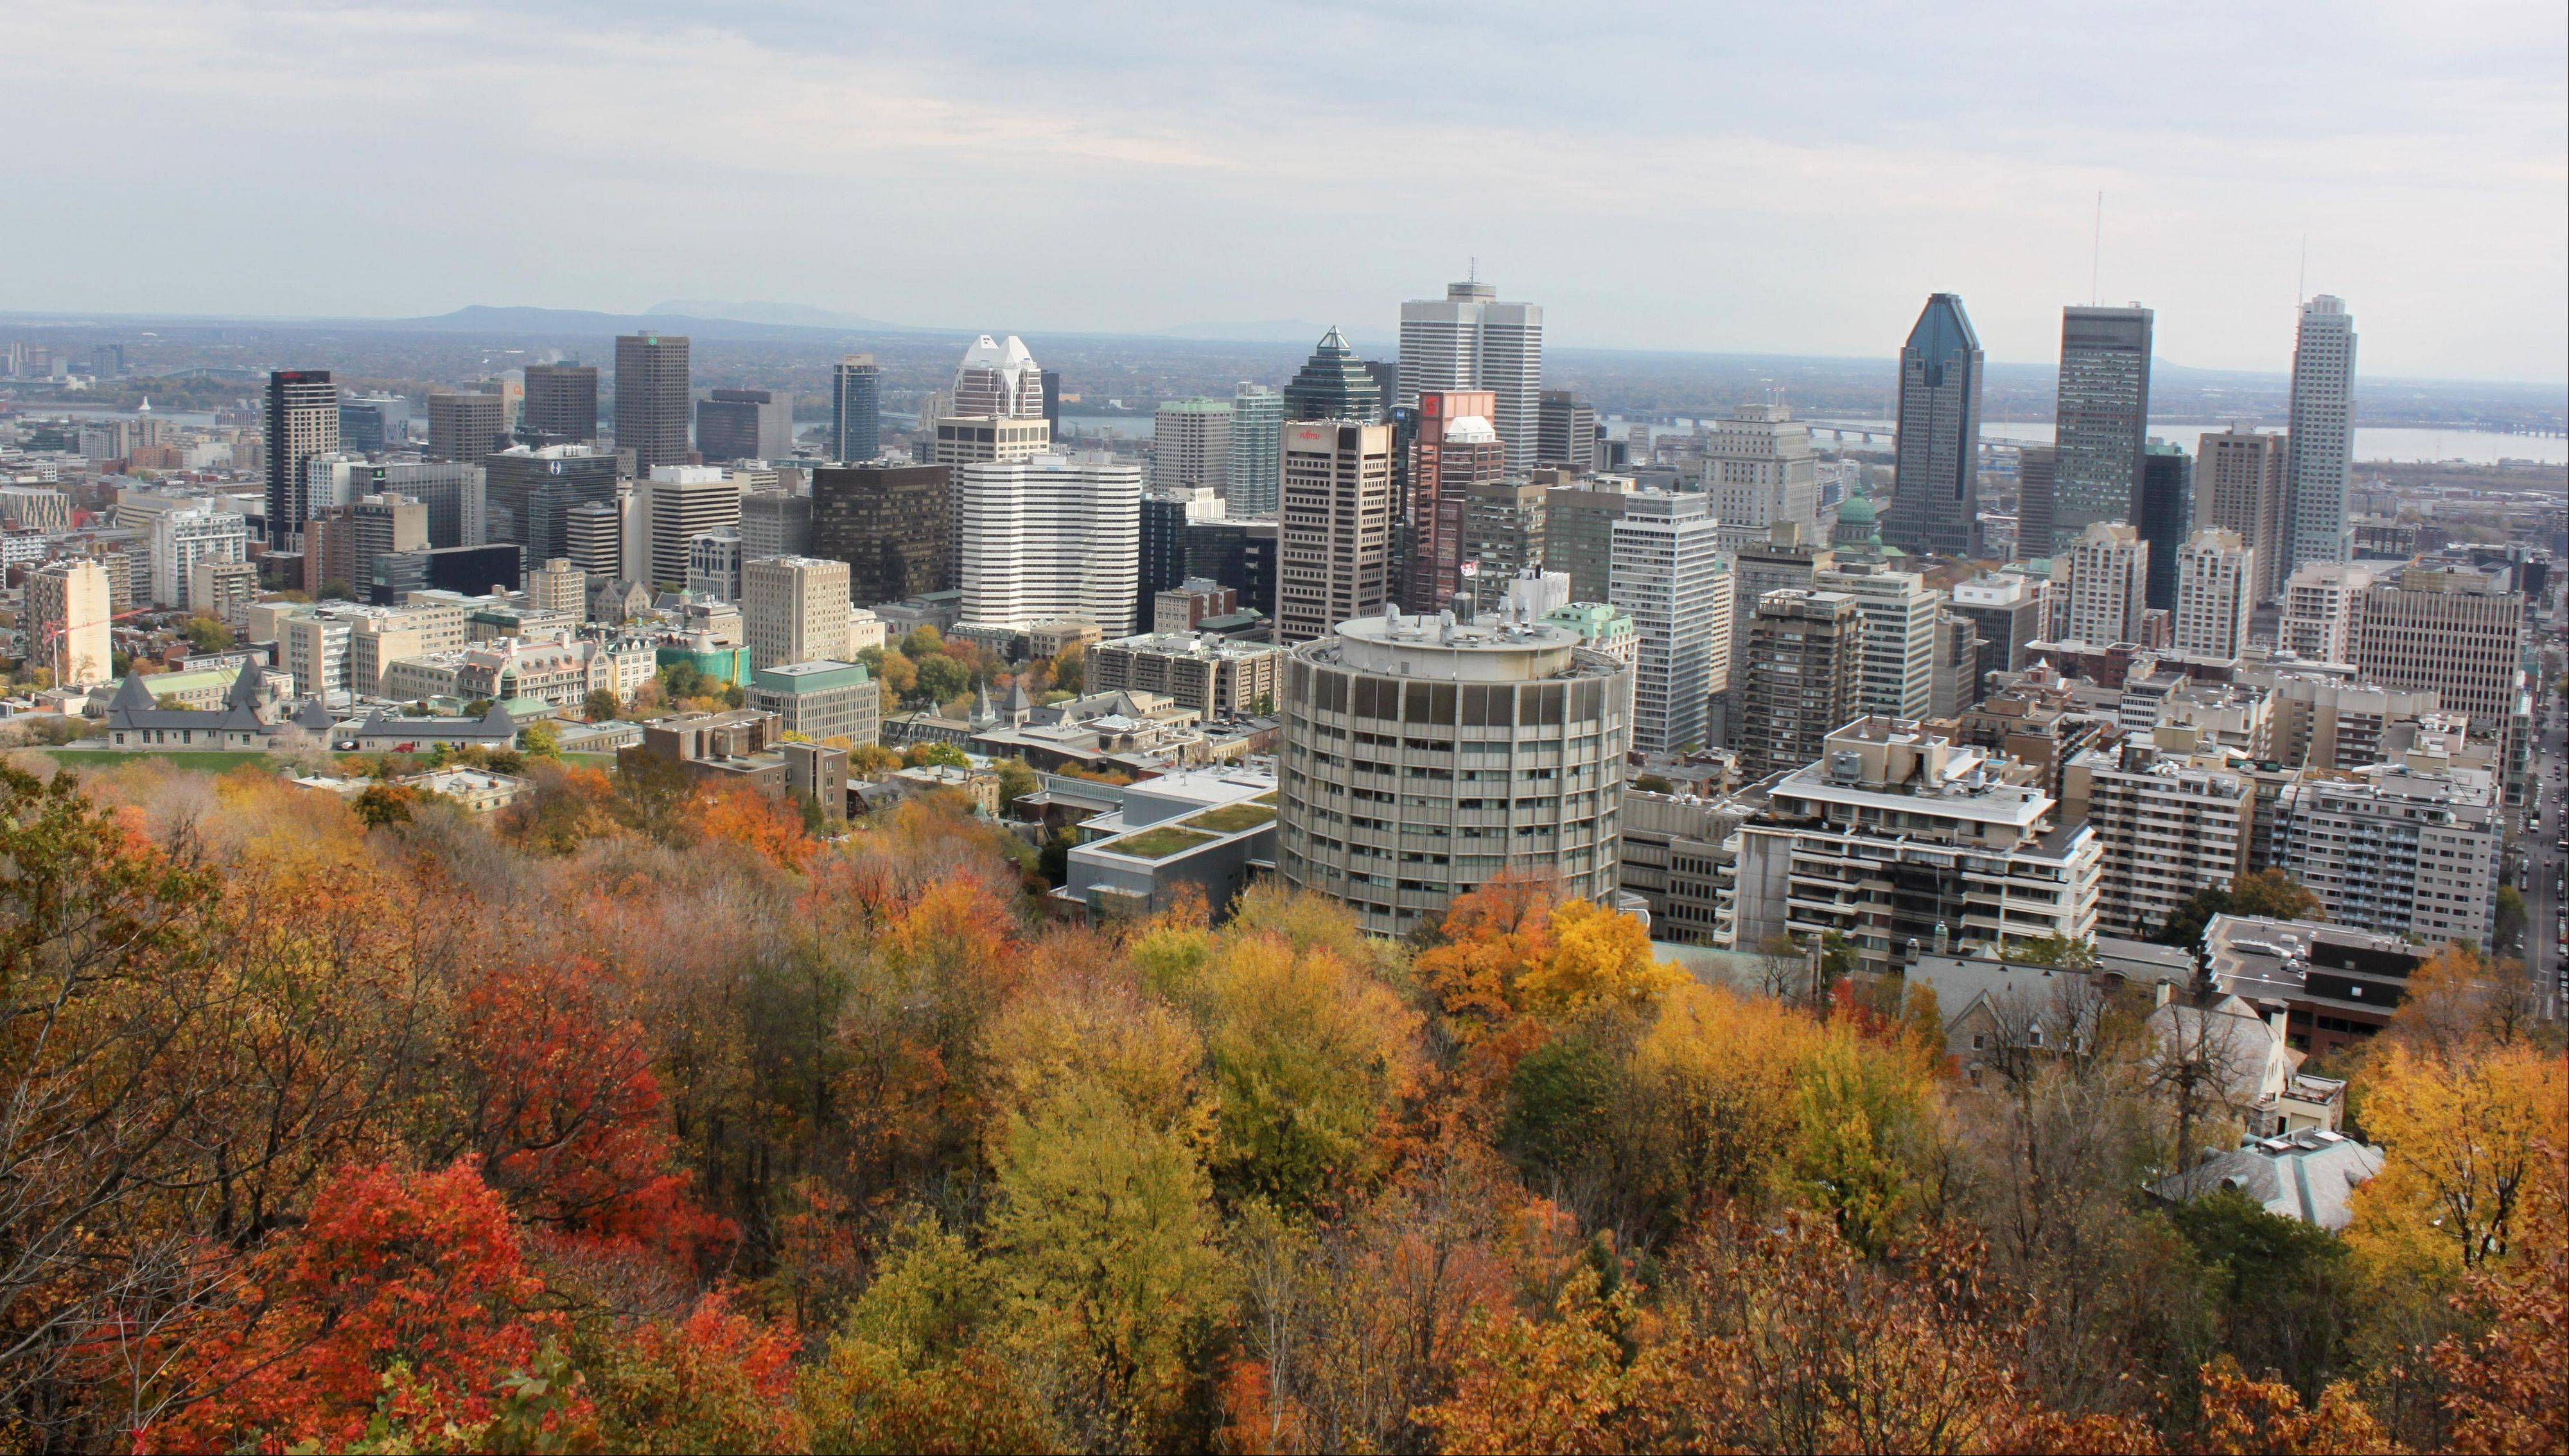 Visitors can get a nice view of downtown Montreal from Mount Royal park, which is free to explore.